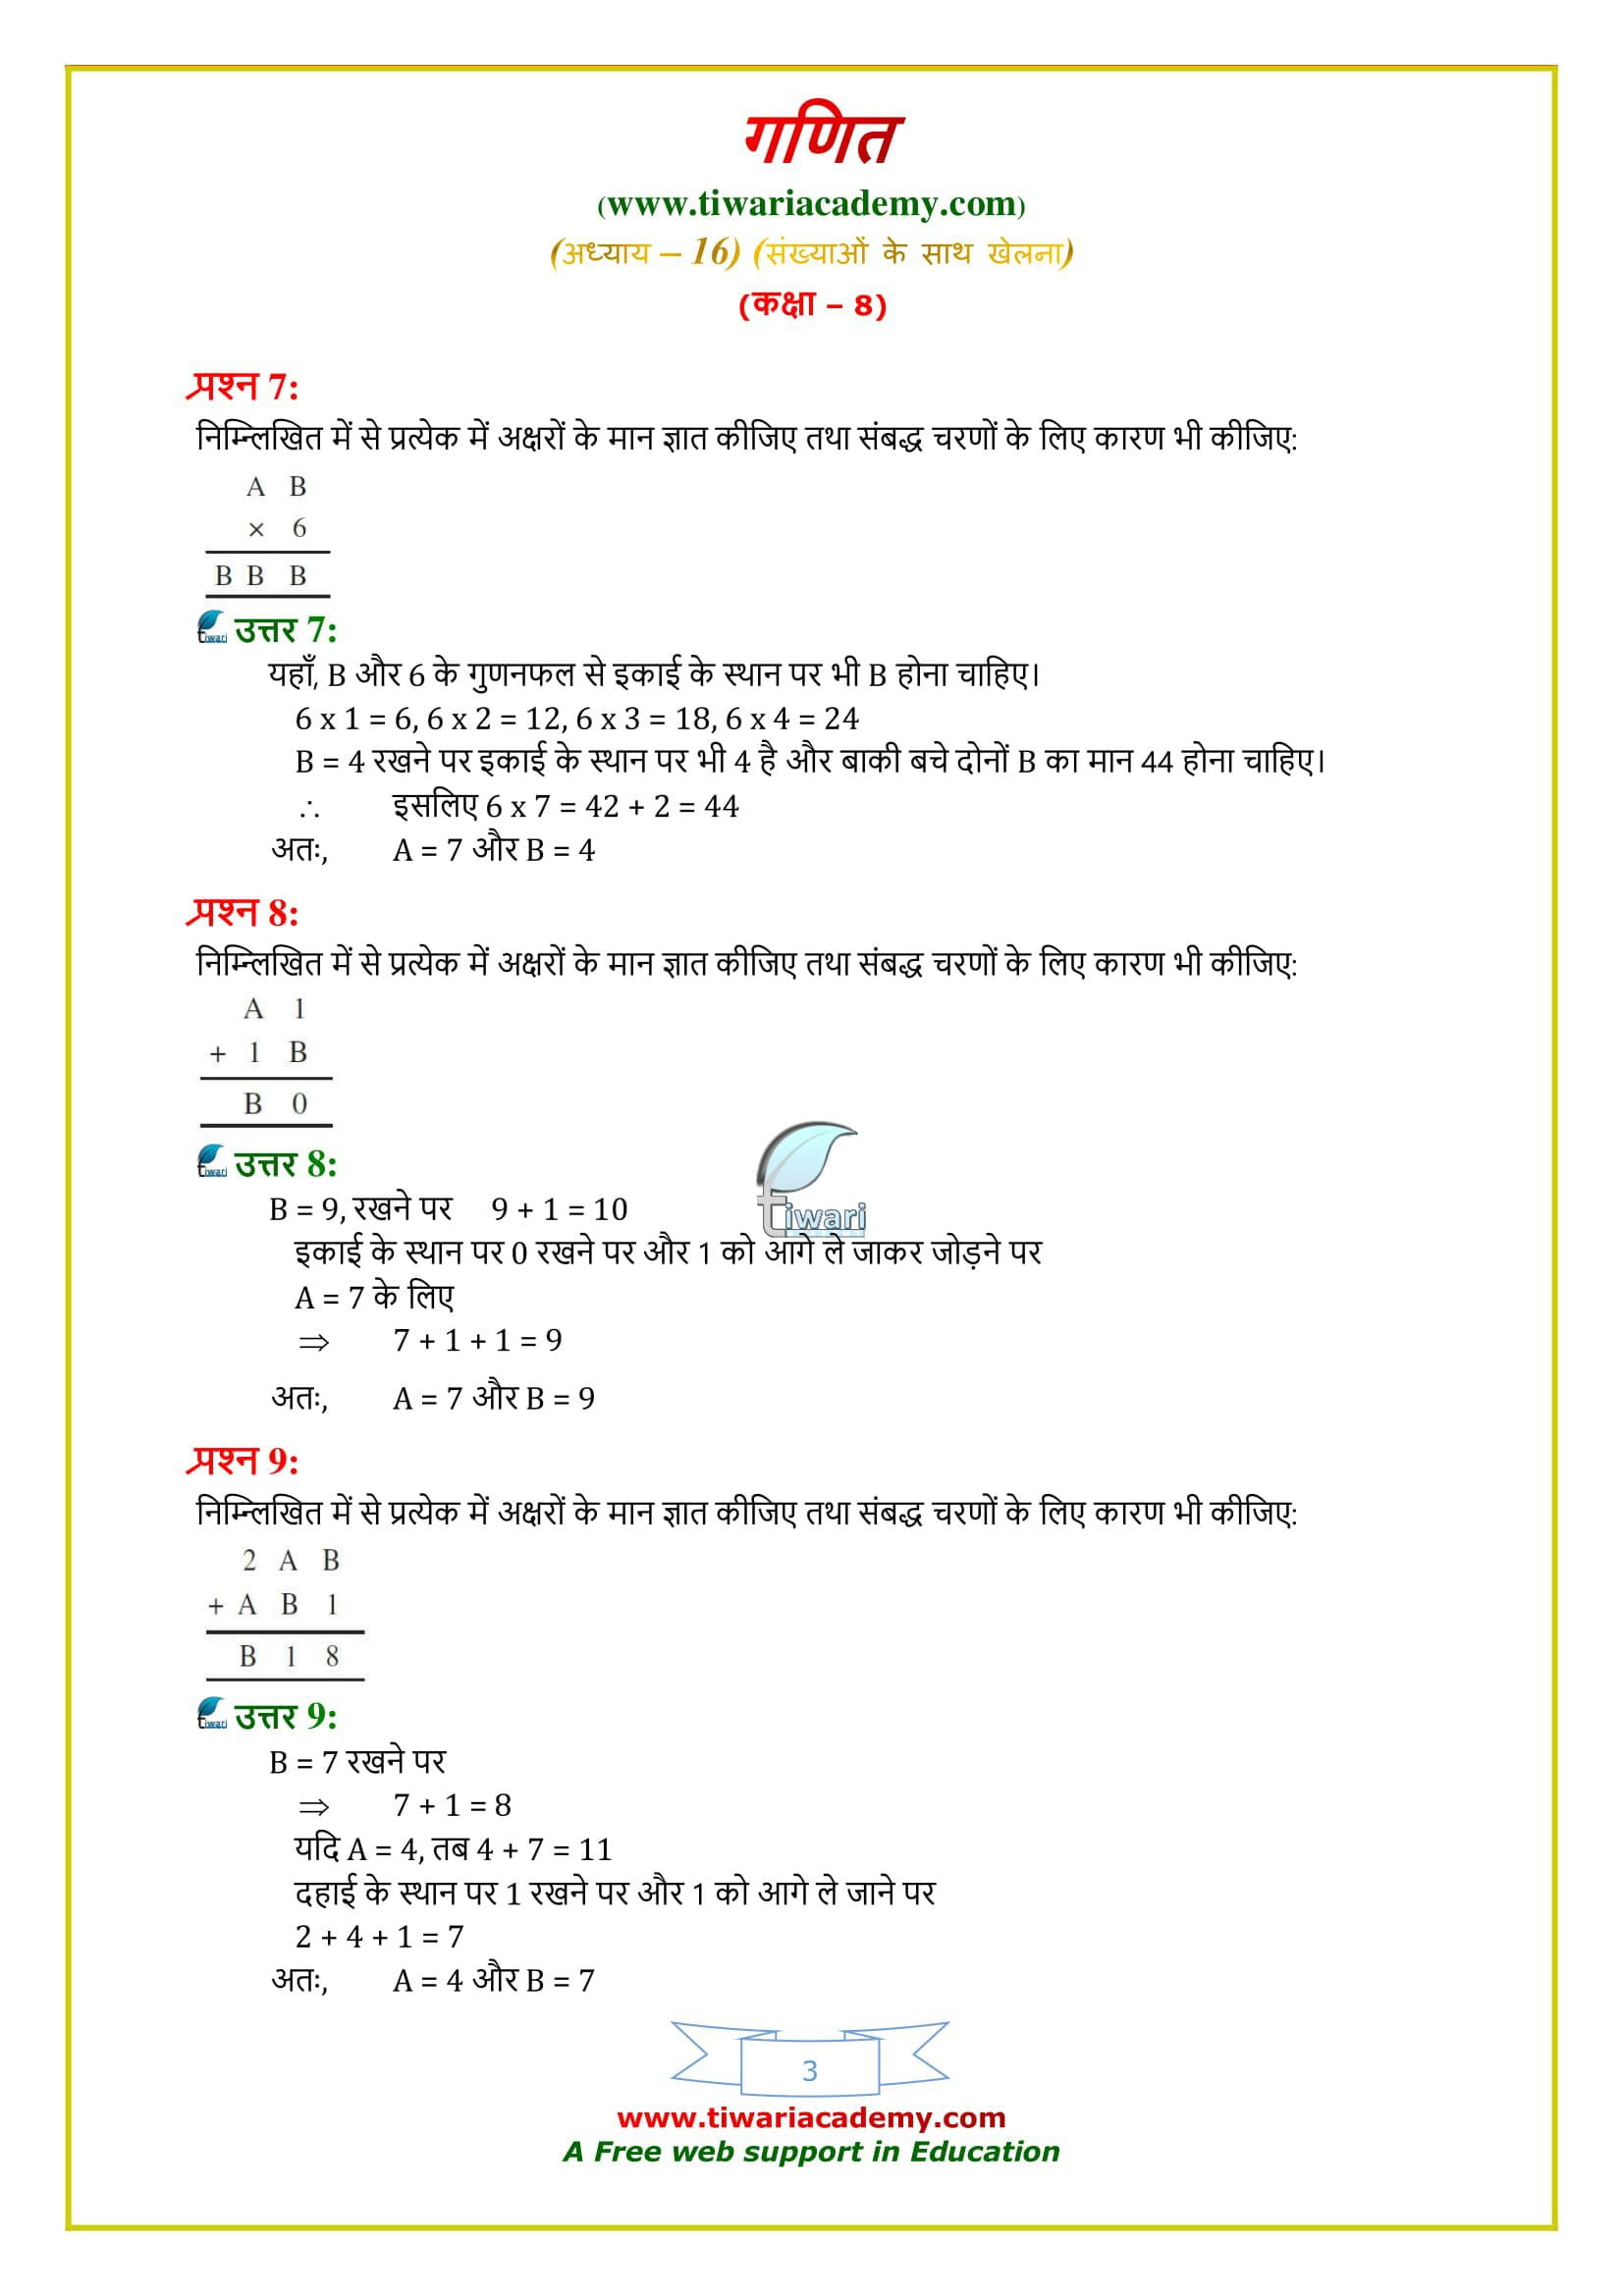 8 Maths Exercise 16.1 solutions for 2018-19 session